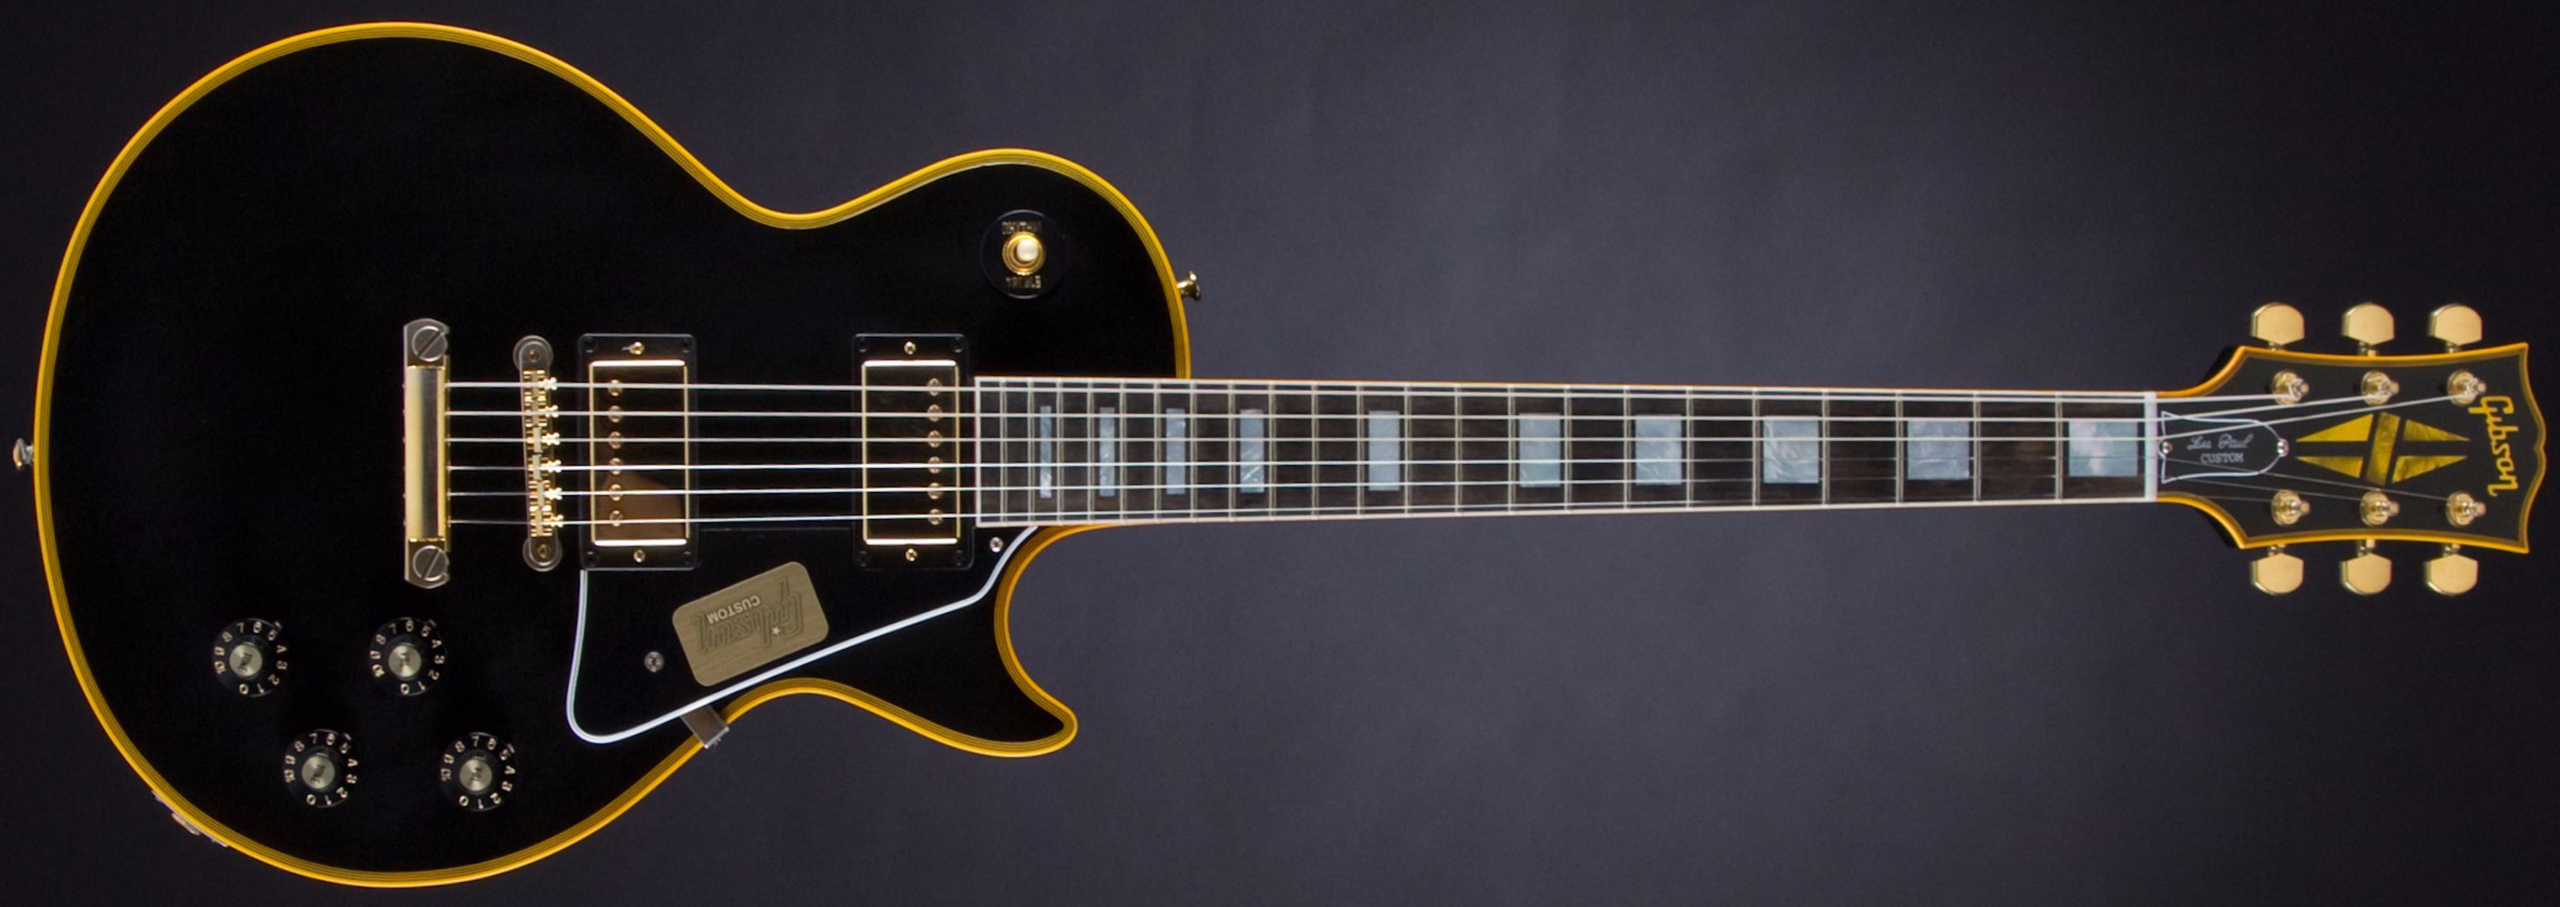 GIBSON 1974 Les Paul Custom Reissue Ebony #CS501311